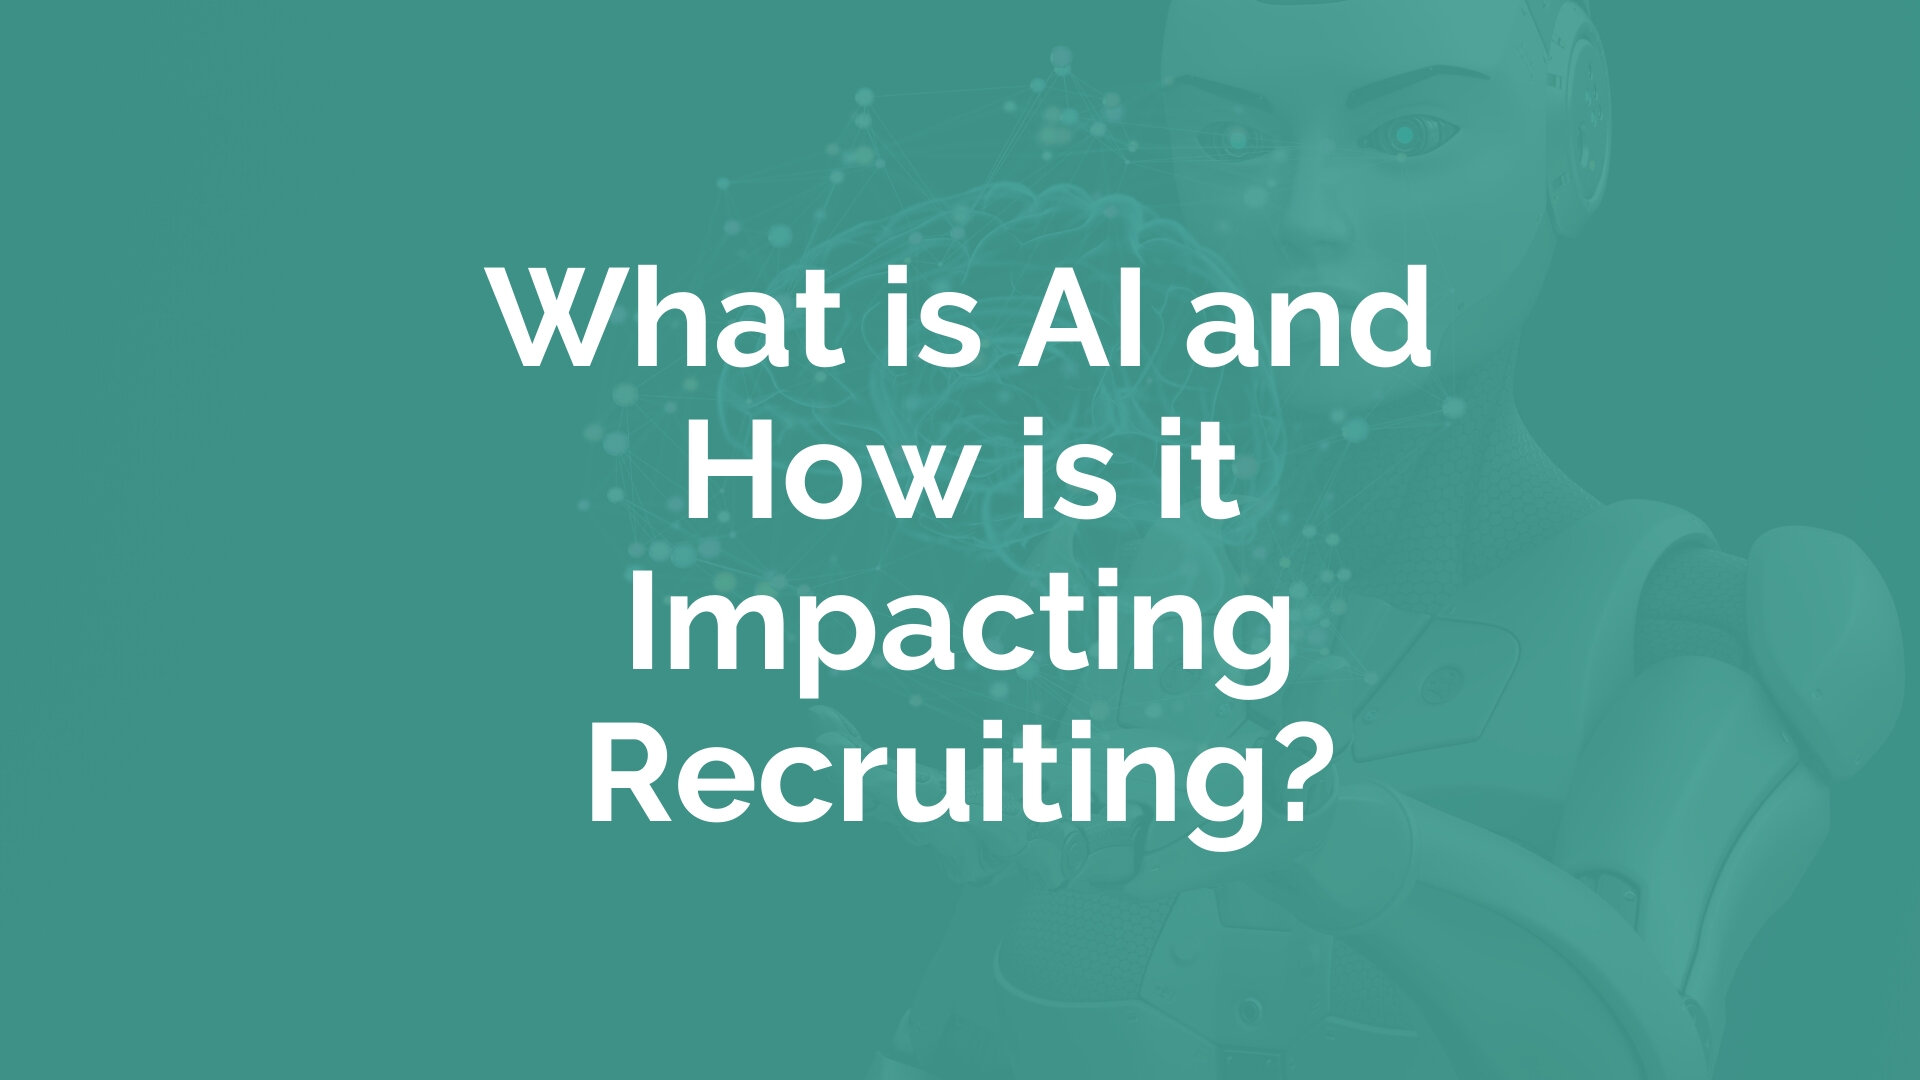 What is AI and How is it Impacting Recruiting? | myHRfuture